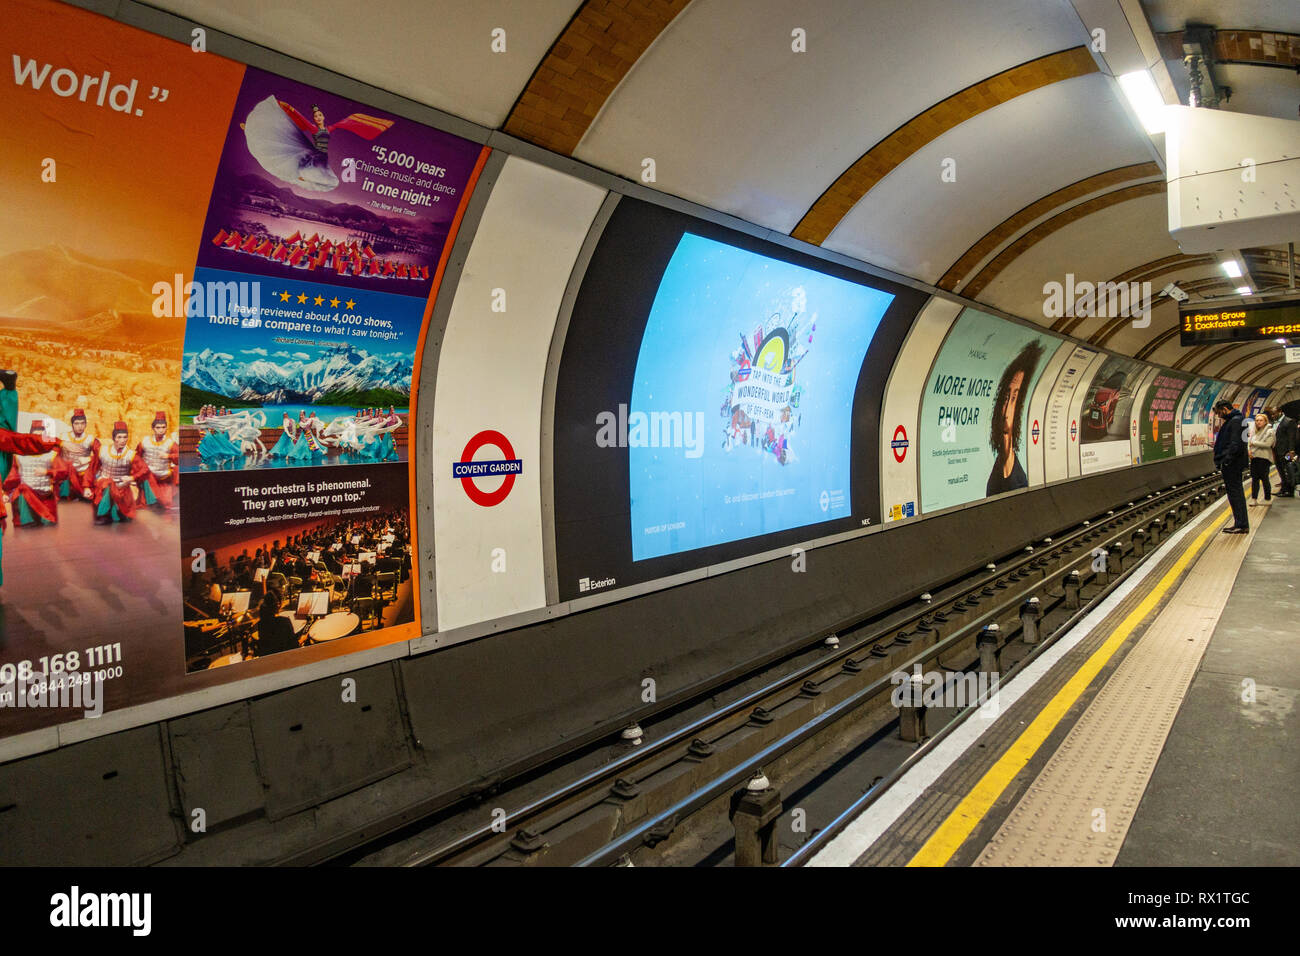 Tube train Underground Track with ad poster Billboard Advertising posters on the Underground Tube at Covent Garden, London - Stock Image